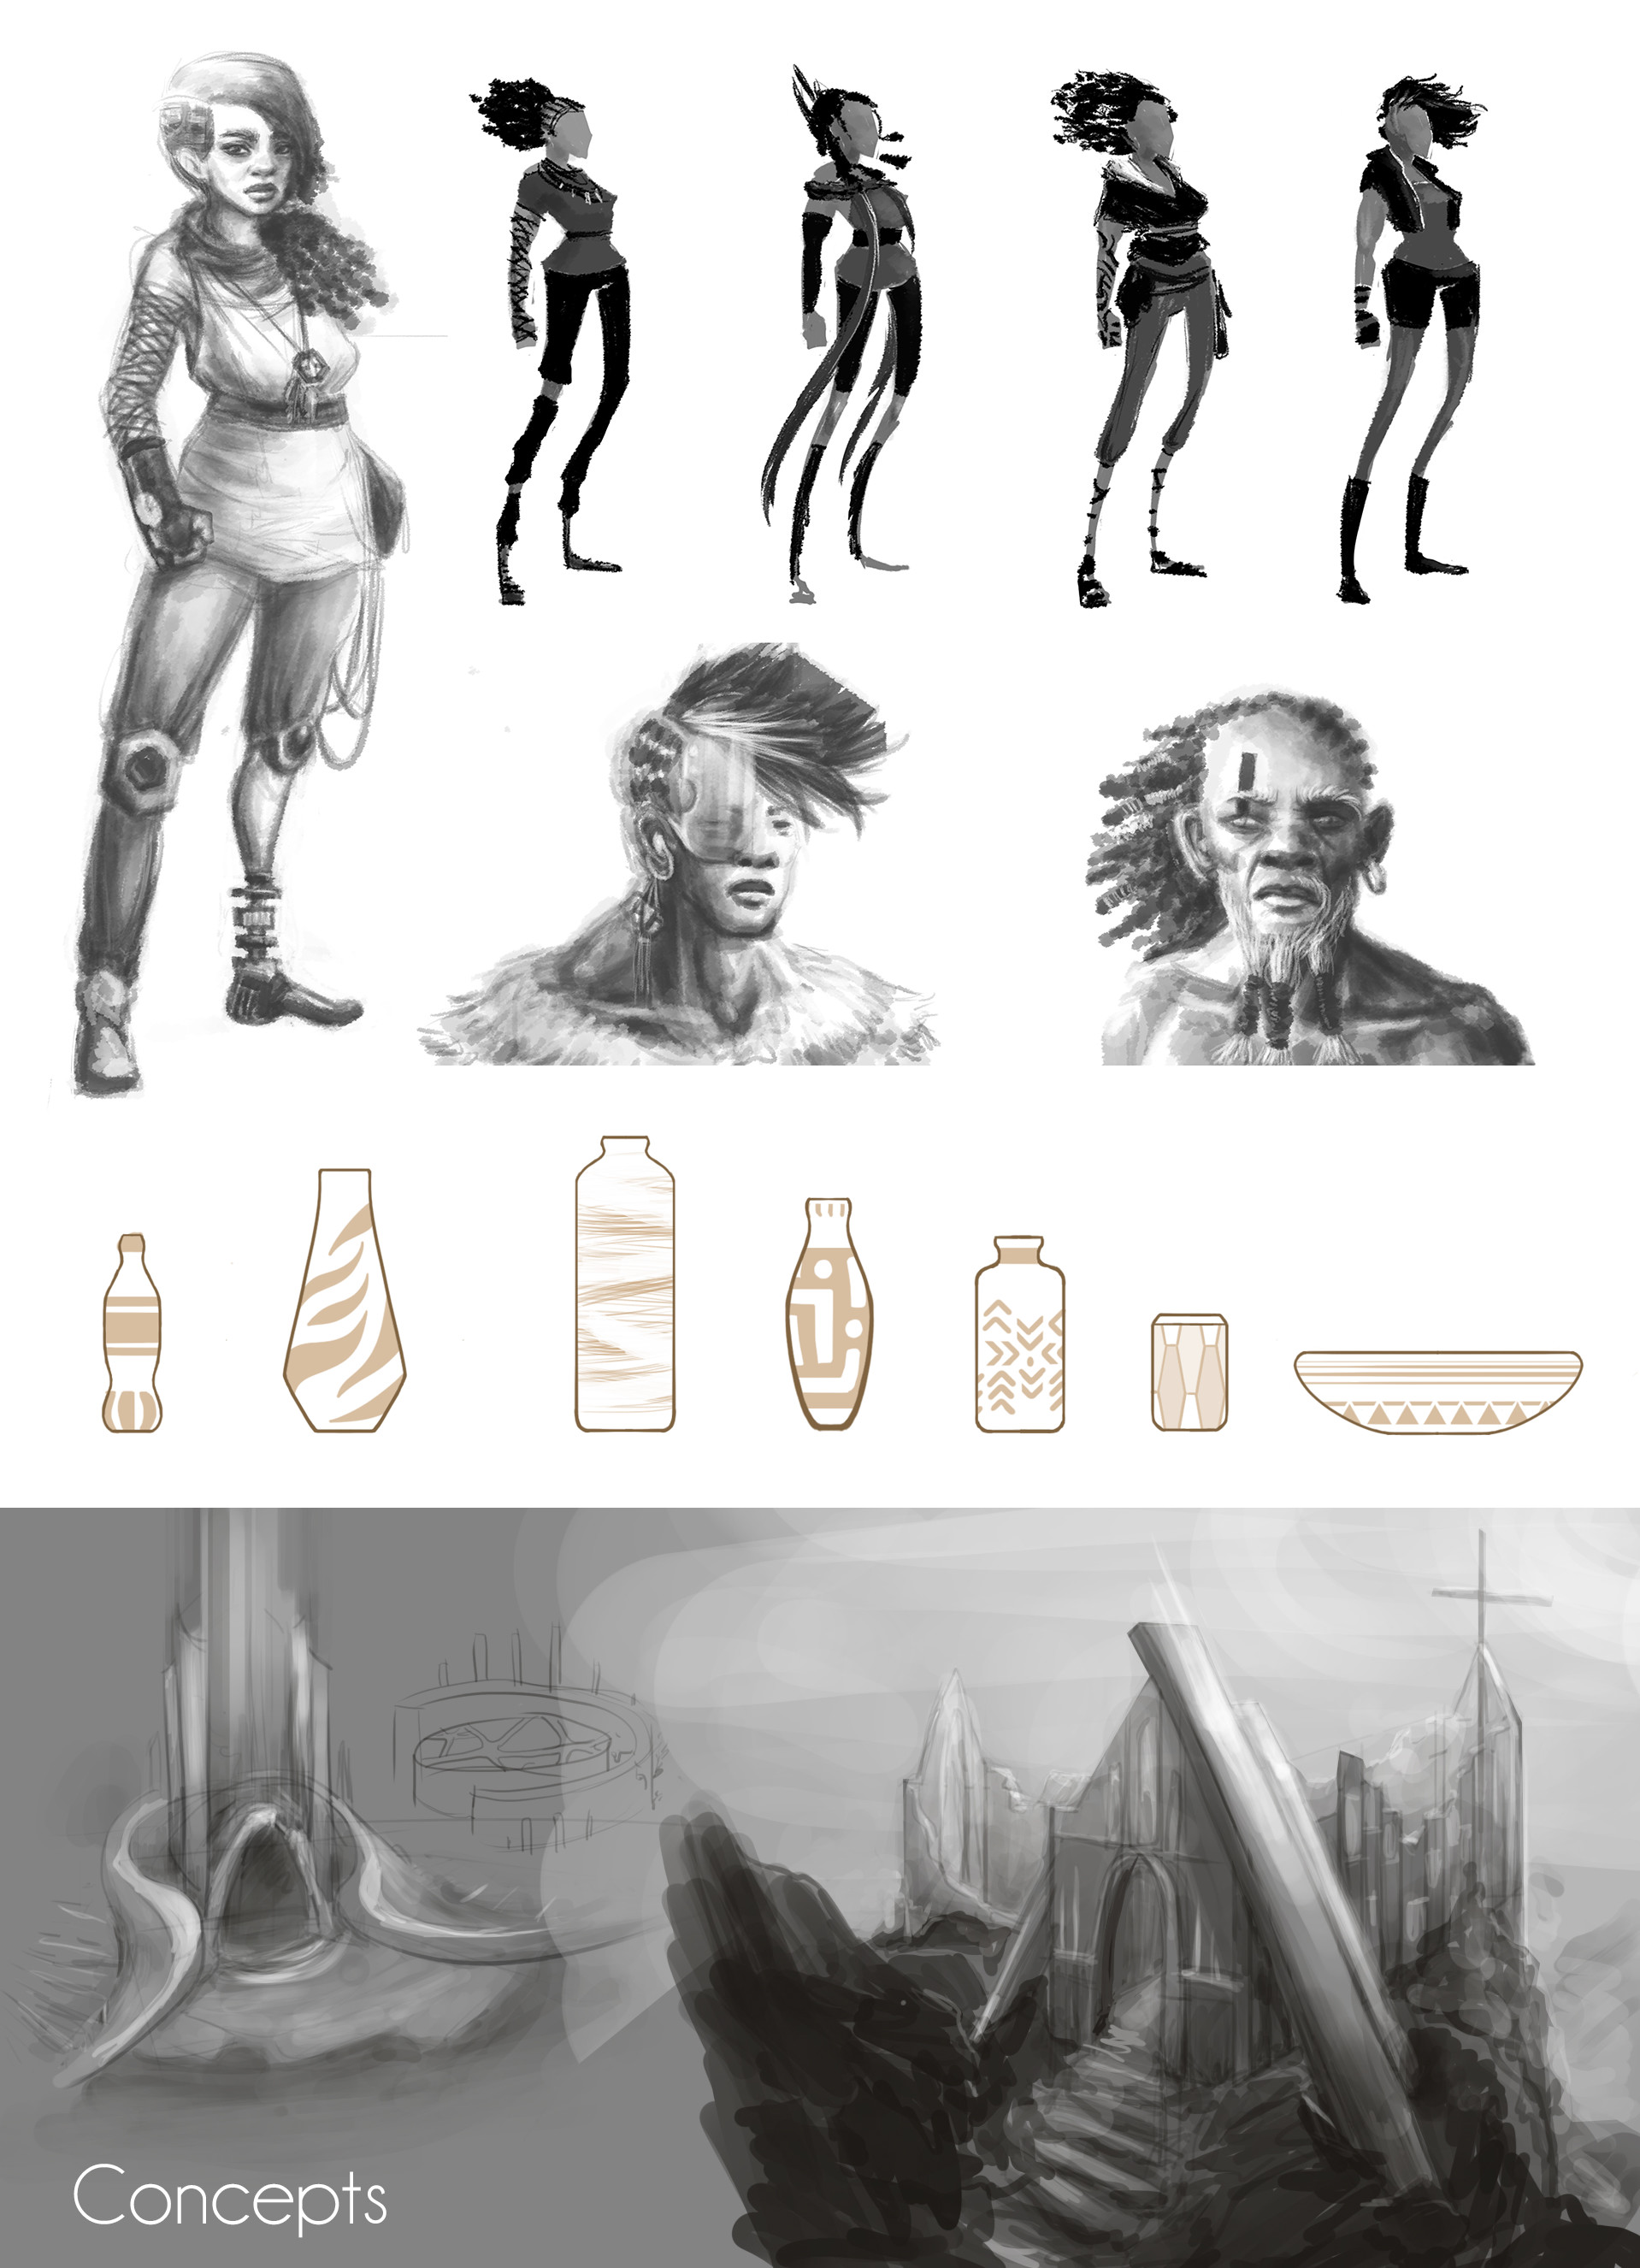 Concept arts for the main character, a female shaman who has survived the apocalypse but lost her arm, and another shaman and tribal people.